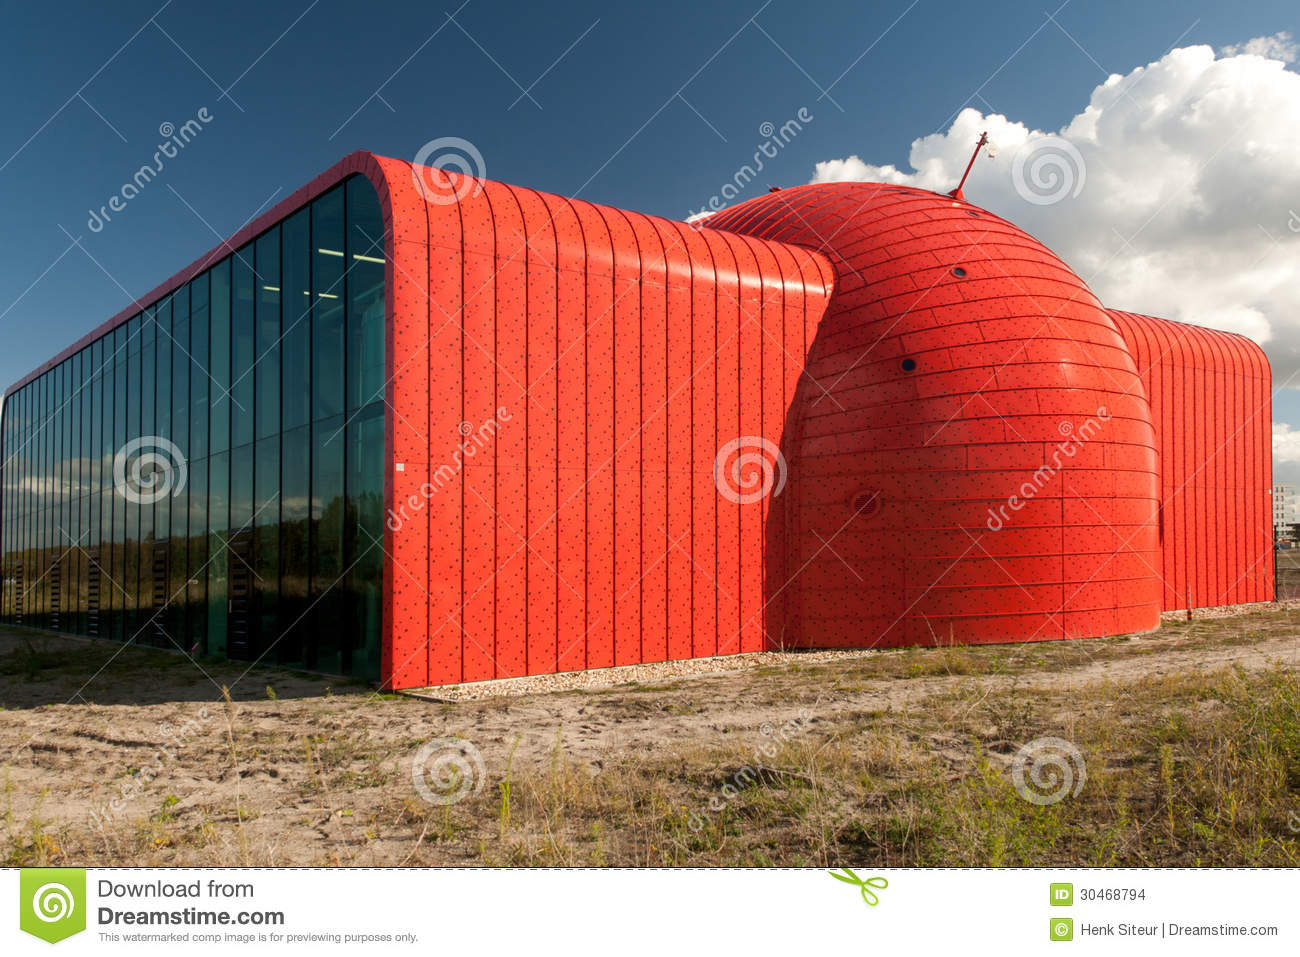 Heat transfer station in Almere, The Netherlands